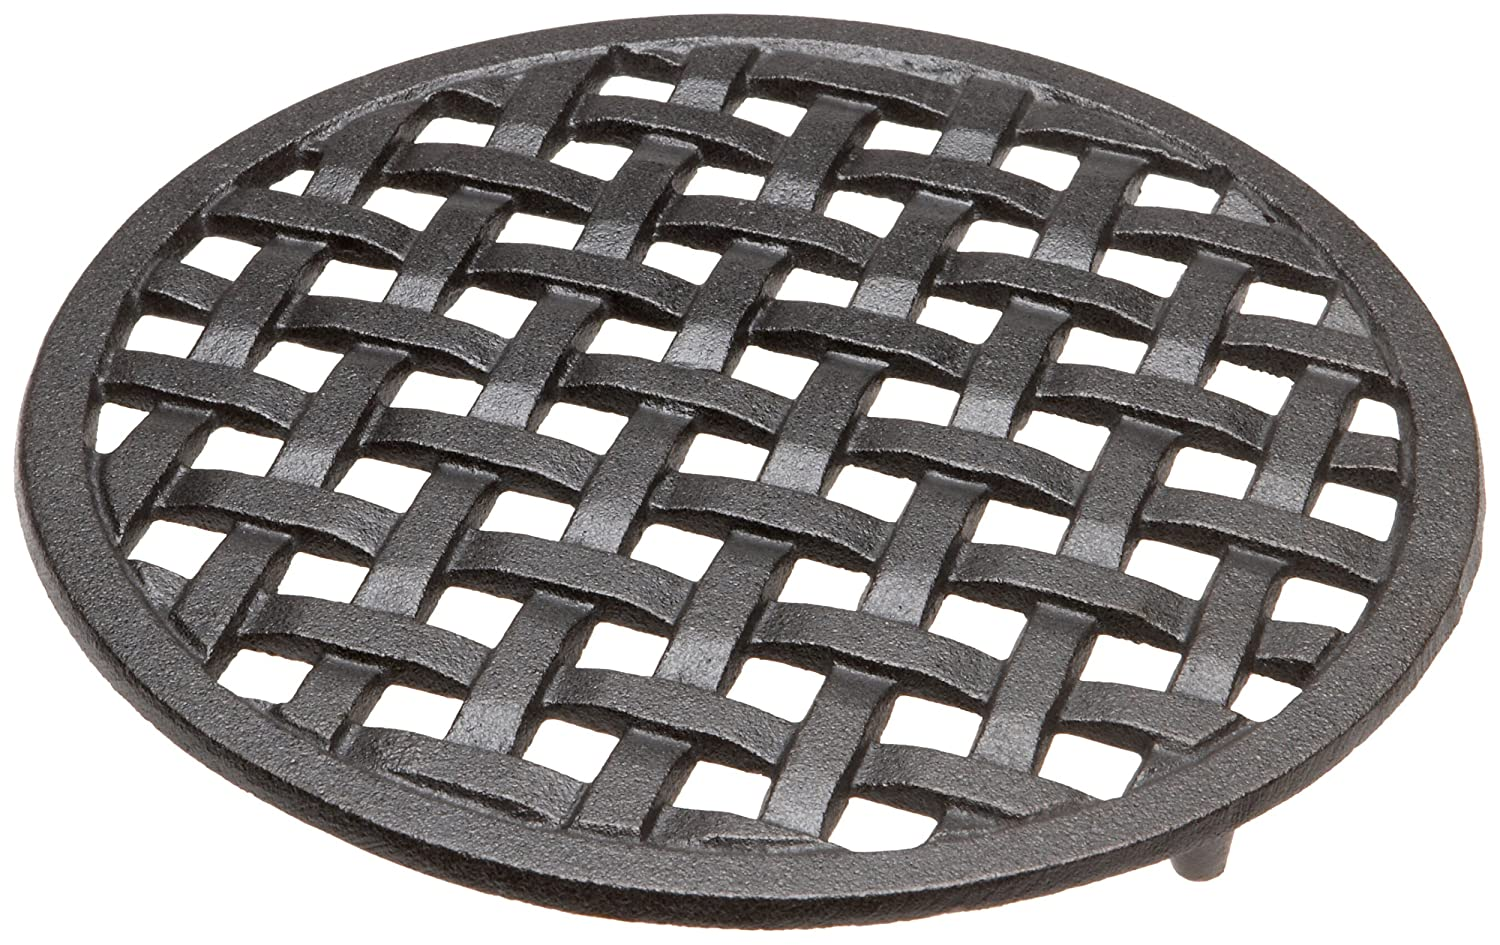 Trivet - Protect Your Table Tops - Cast Iron 8 Inches in Diameter By Old Mountain